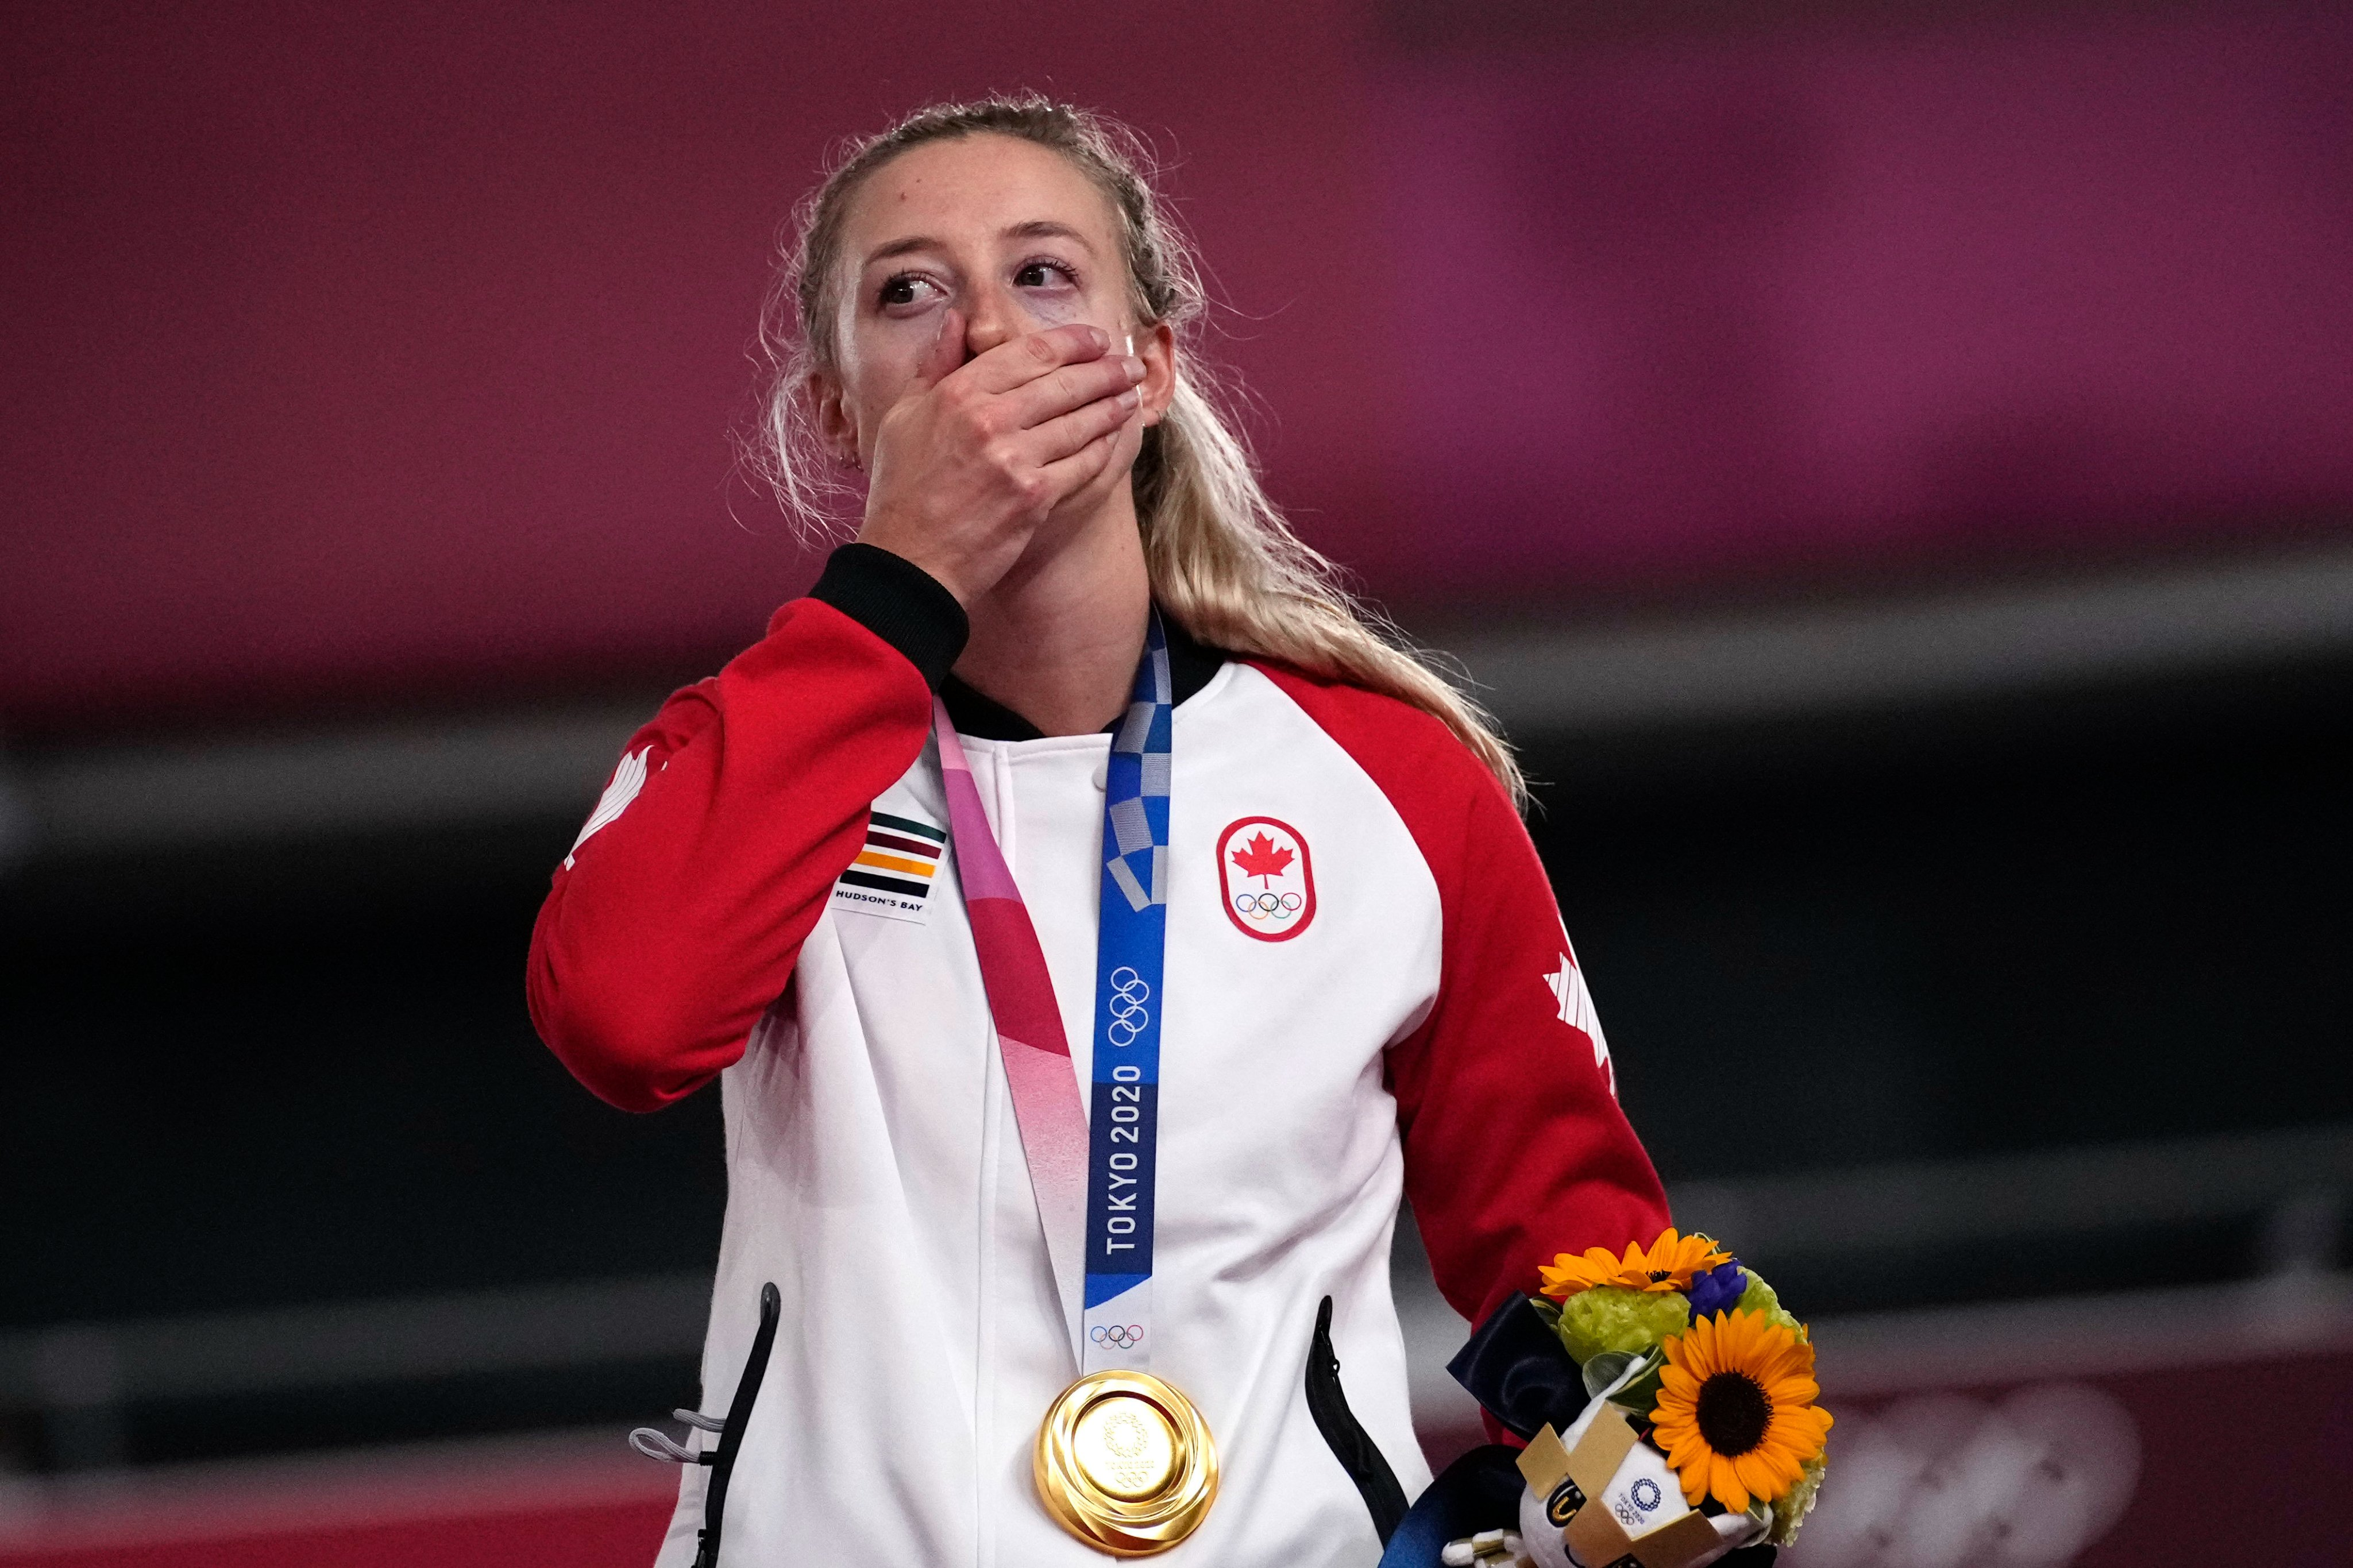 Kelsey Mitchell holds her right hand over her mouth while wearing her gold medal around her neck. She is holding podium flowers in her left hand.